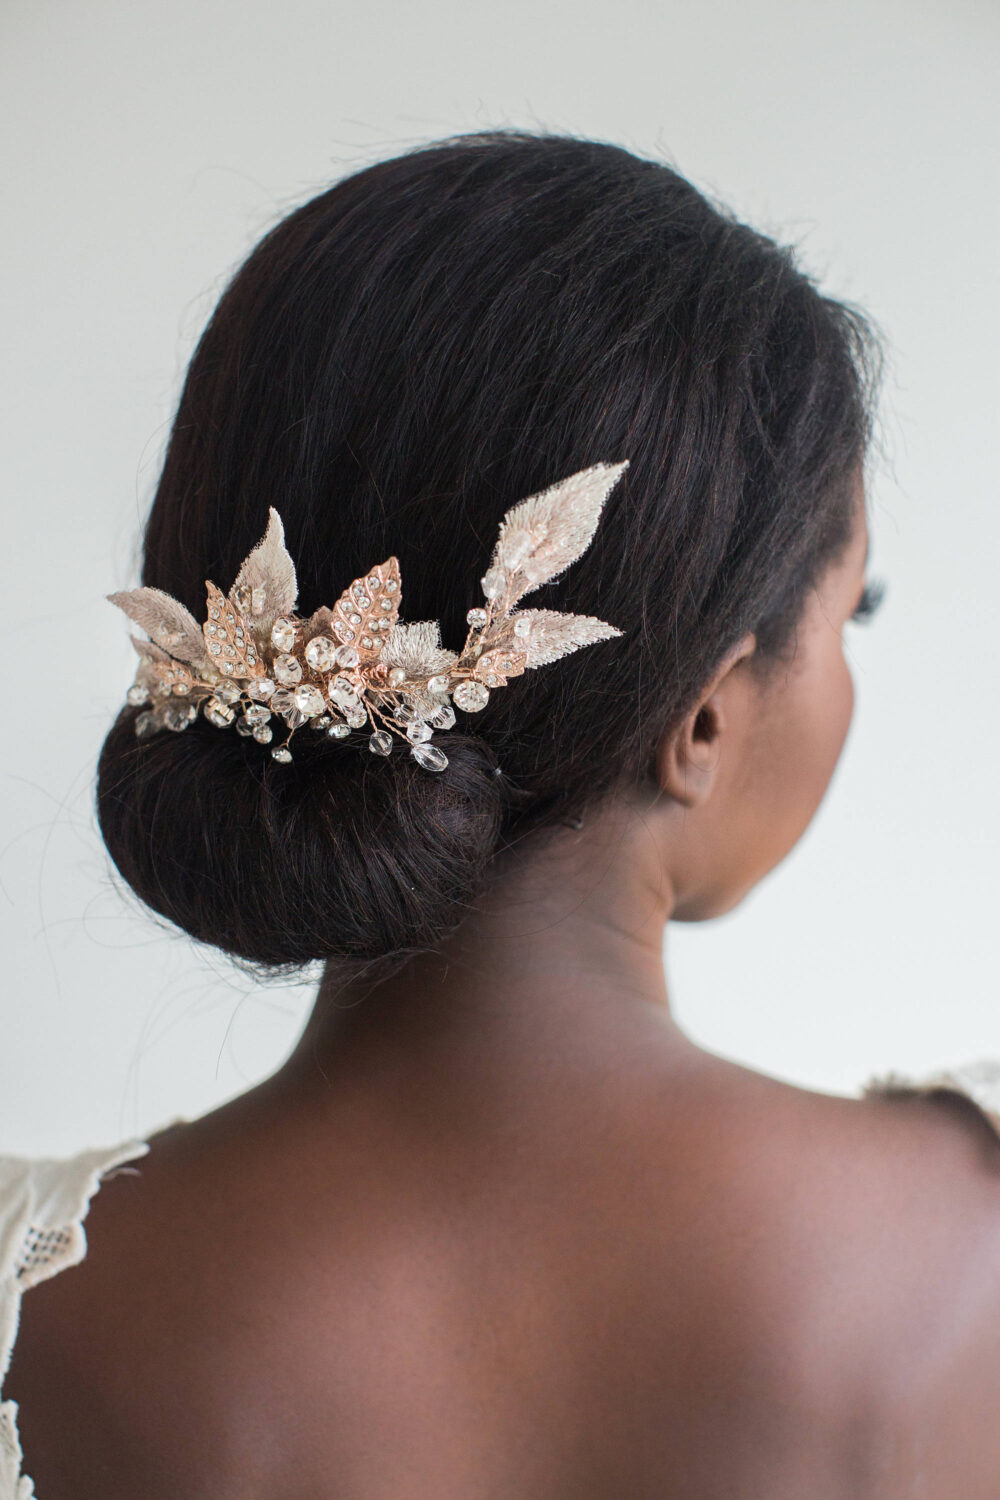 Rose Gold Bridal Comb, Wedding Hair Champagne Lace & Crystal Leaf Headpiece